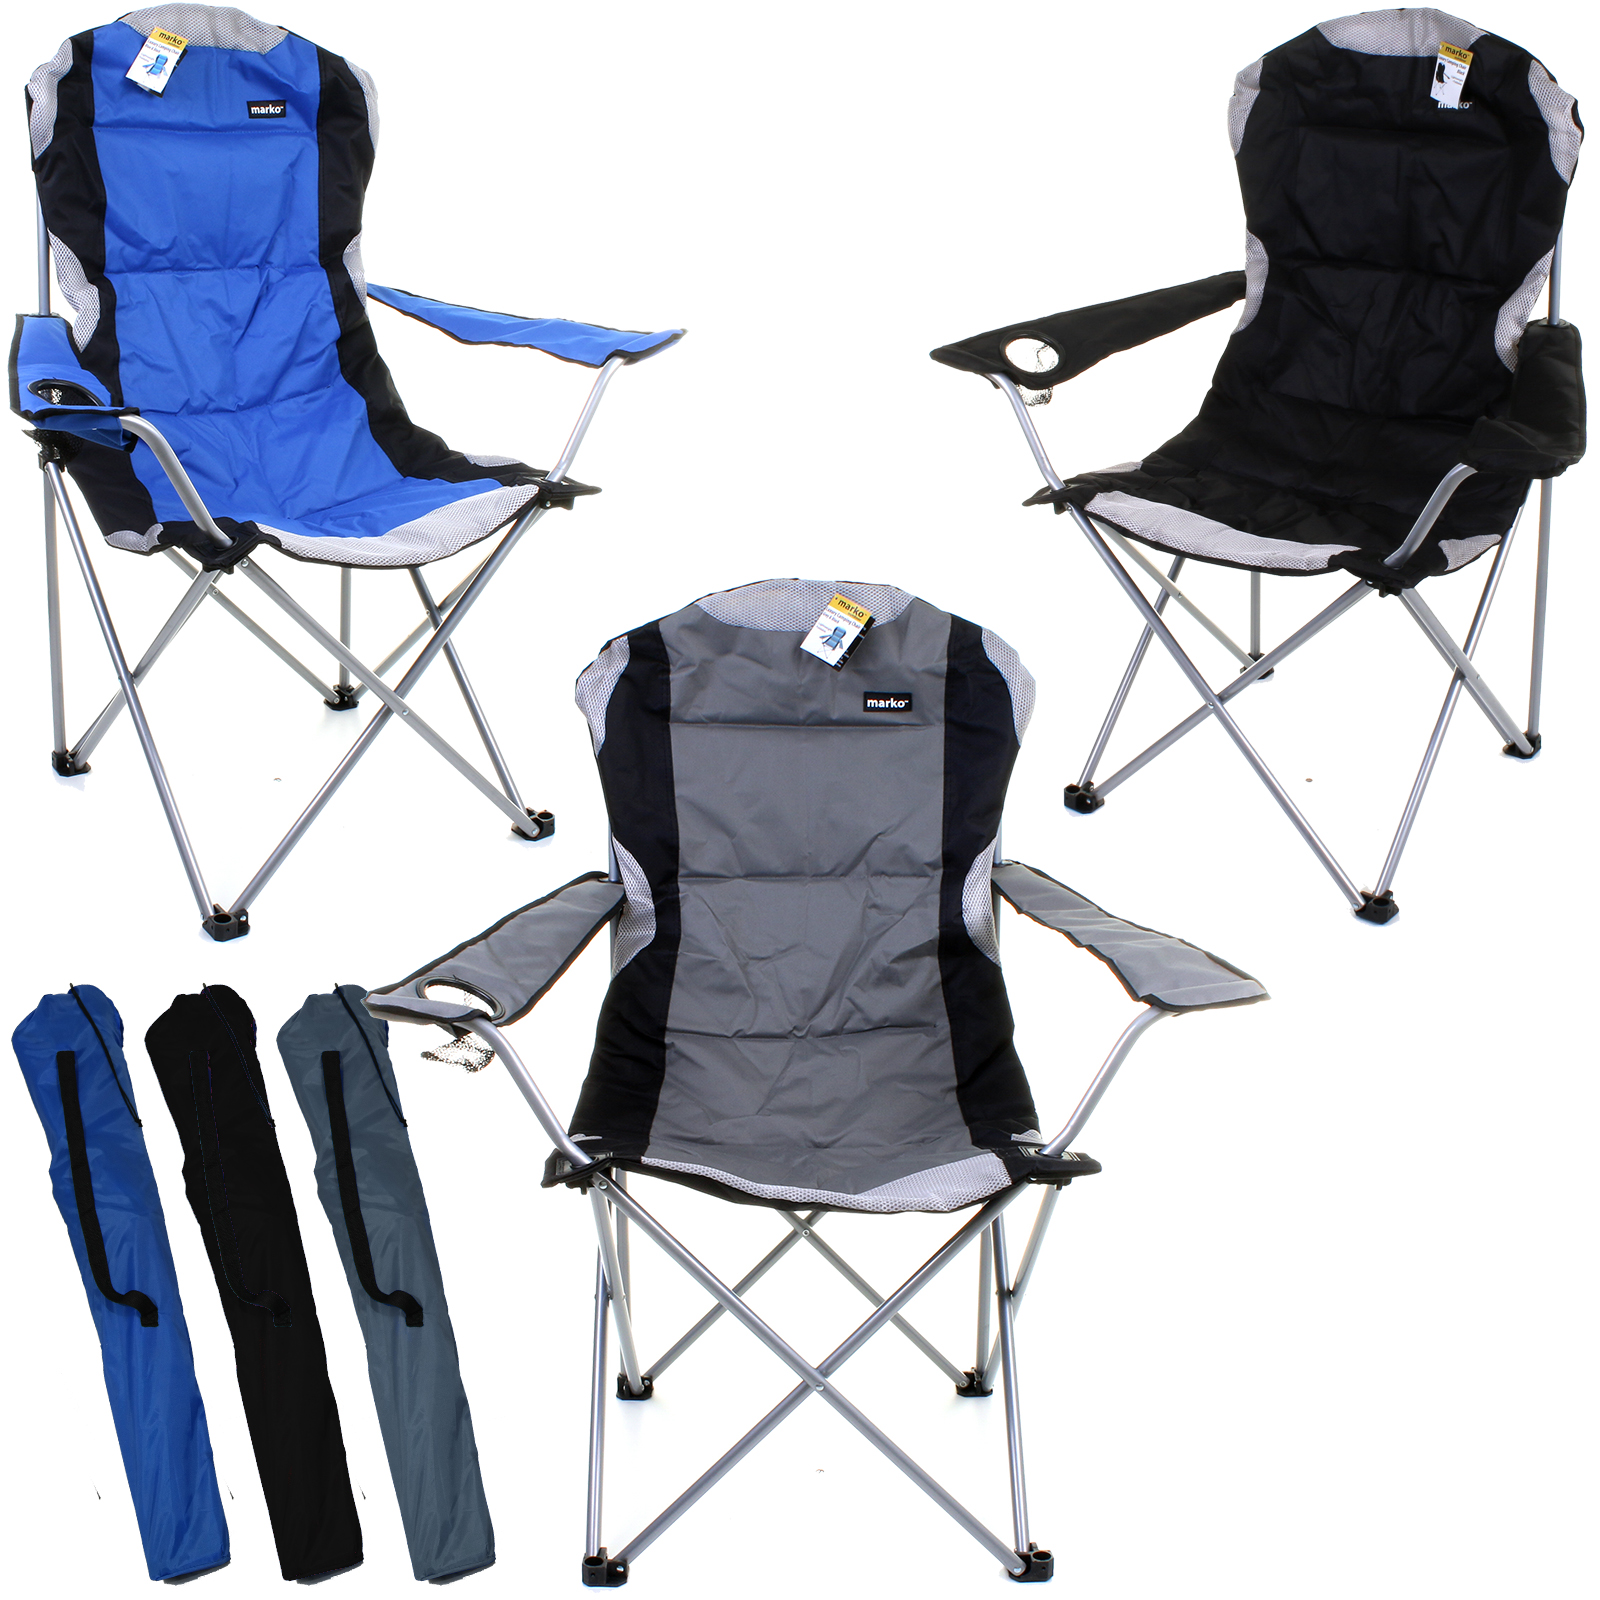 Heavy Duty Deluxe Padded Folding Steel Camping Chair Festival Directors Fishing